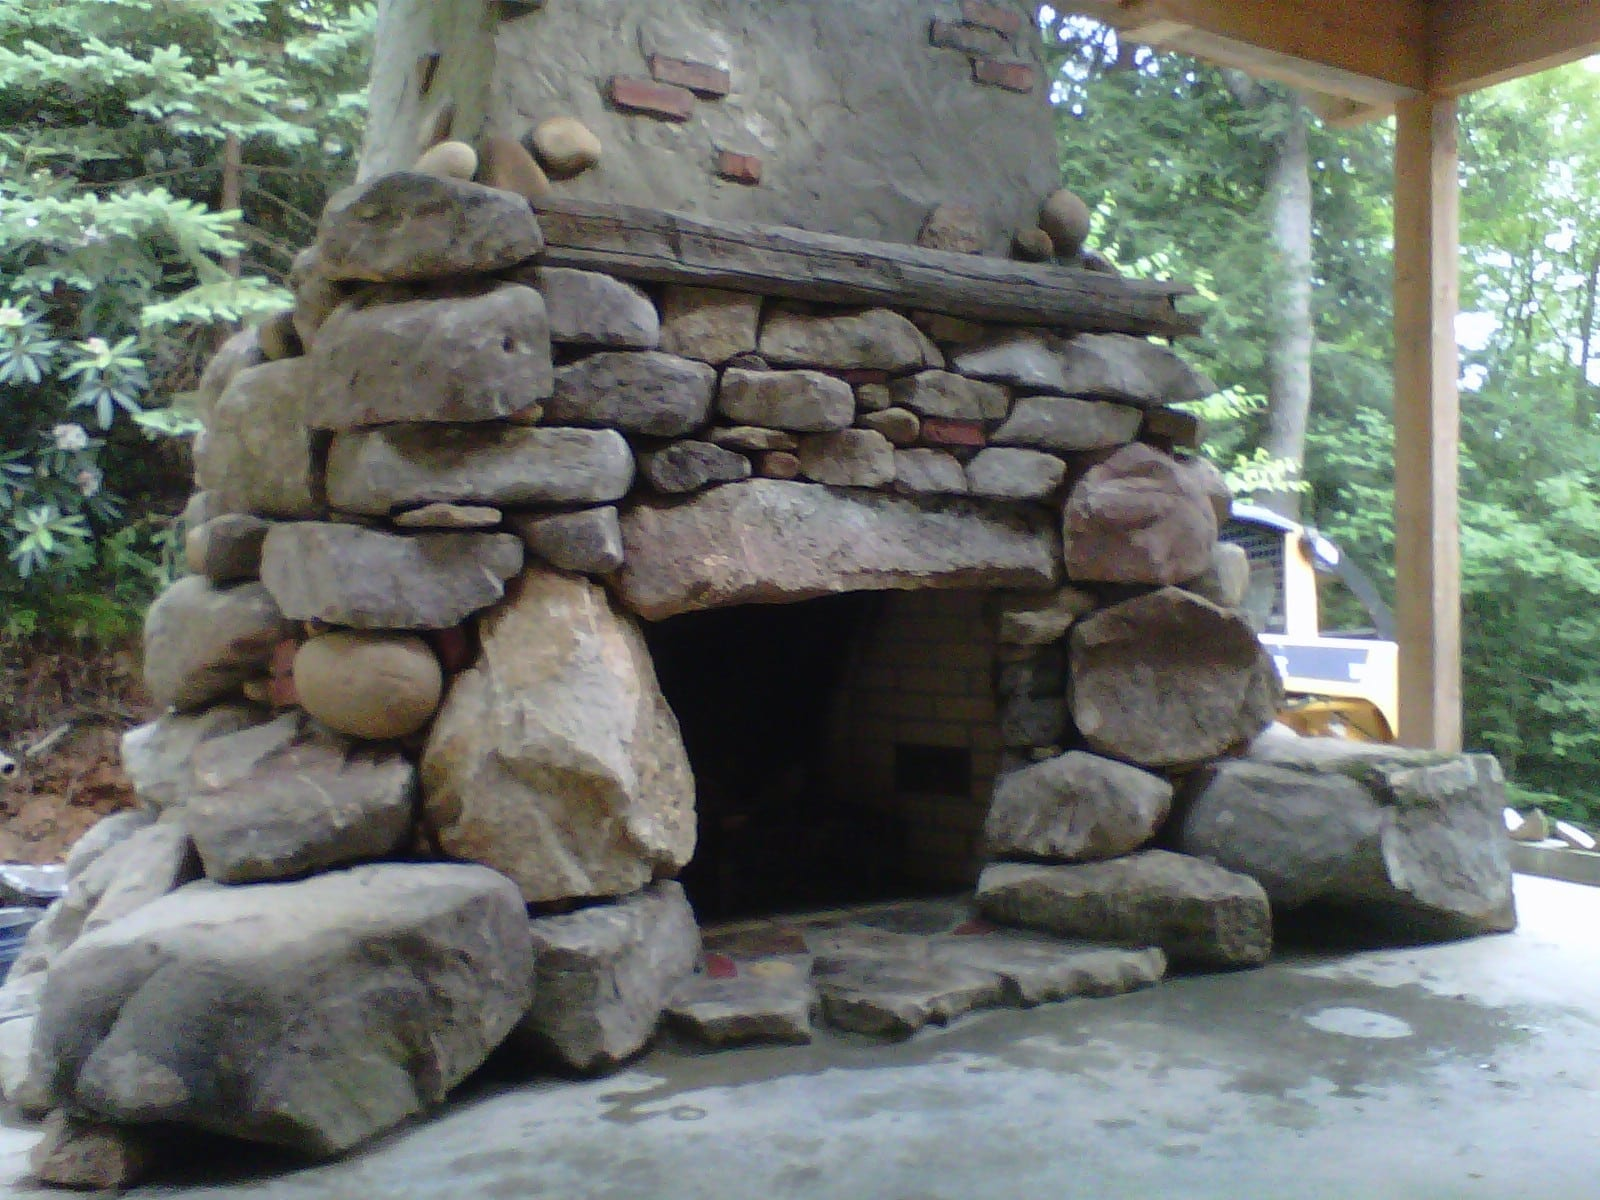 34 Fabulous Outdoor Fireplace Designs for Added Curb-Appeal on Outdoor Fireplaces Ideas id=62788